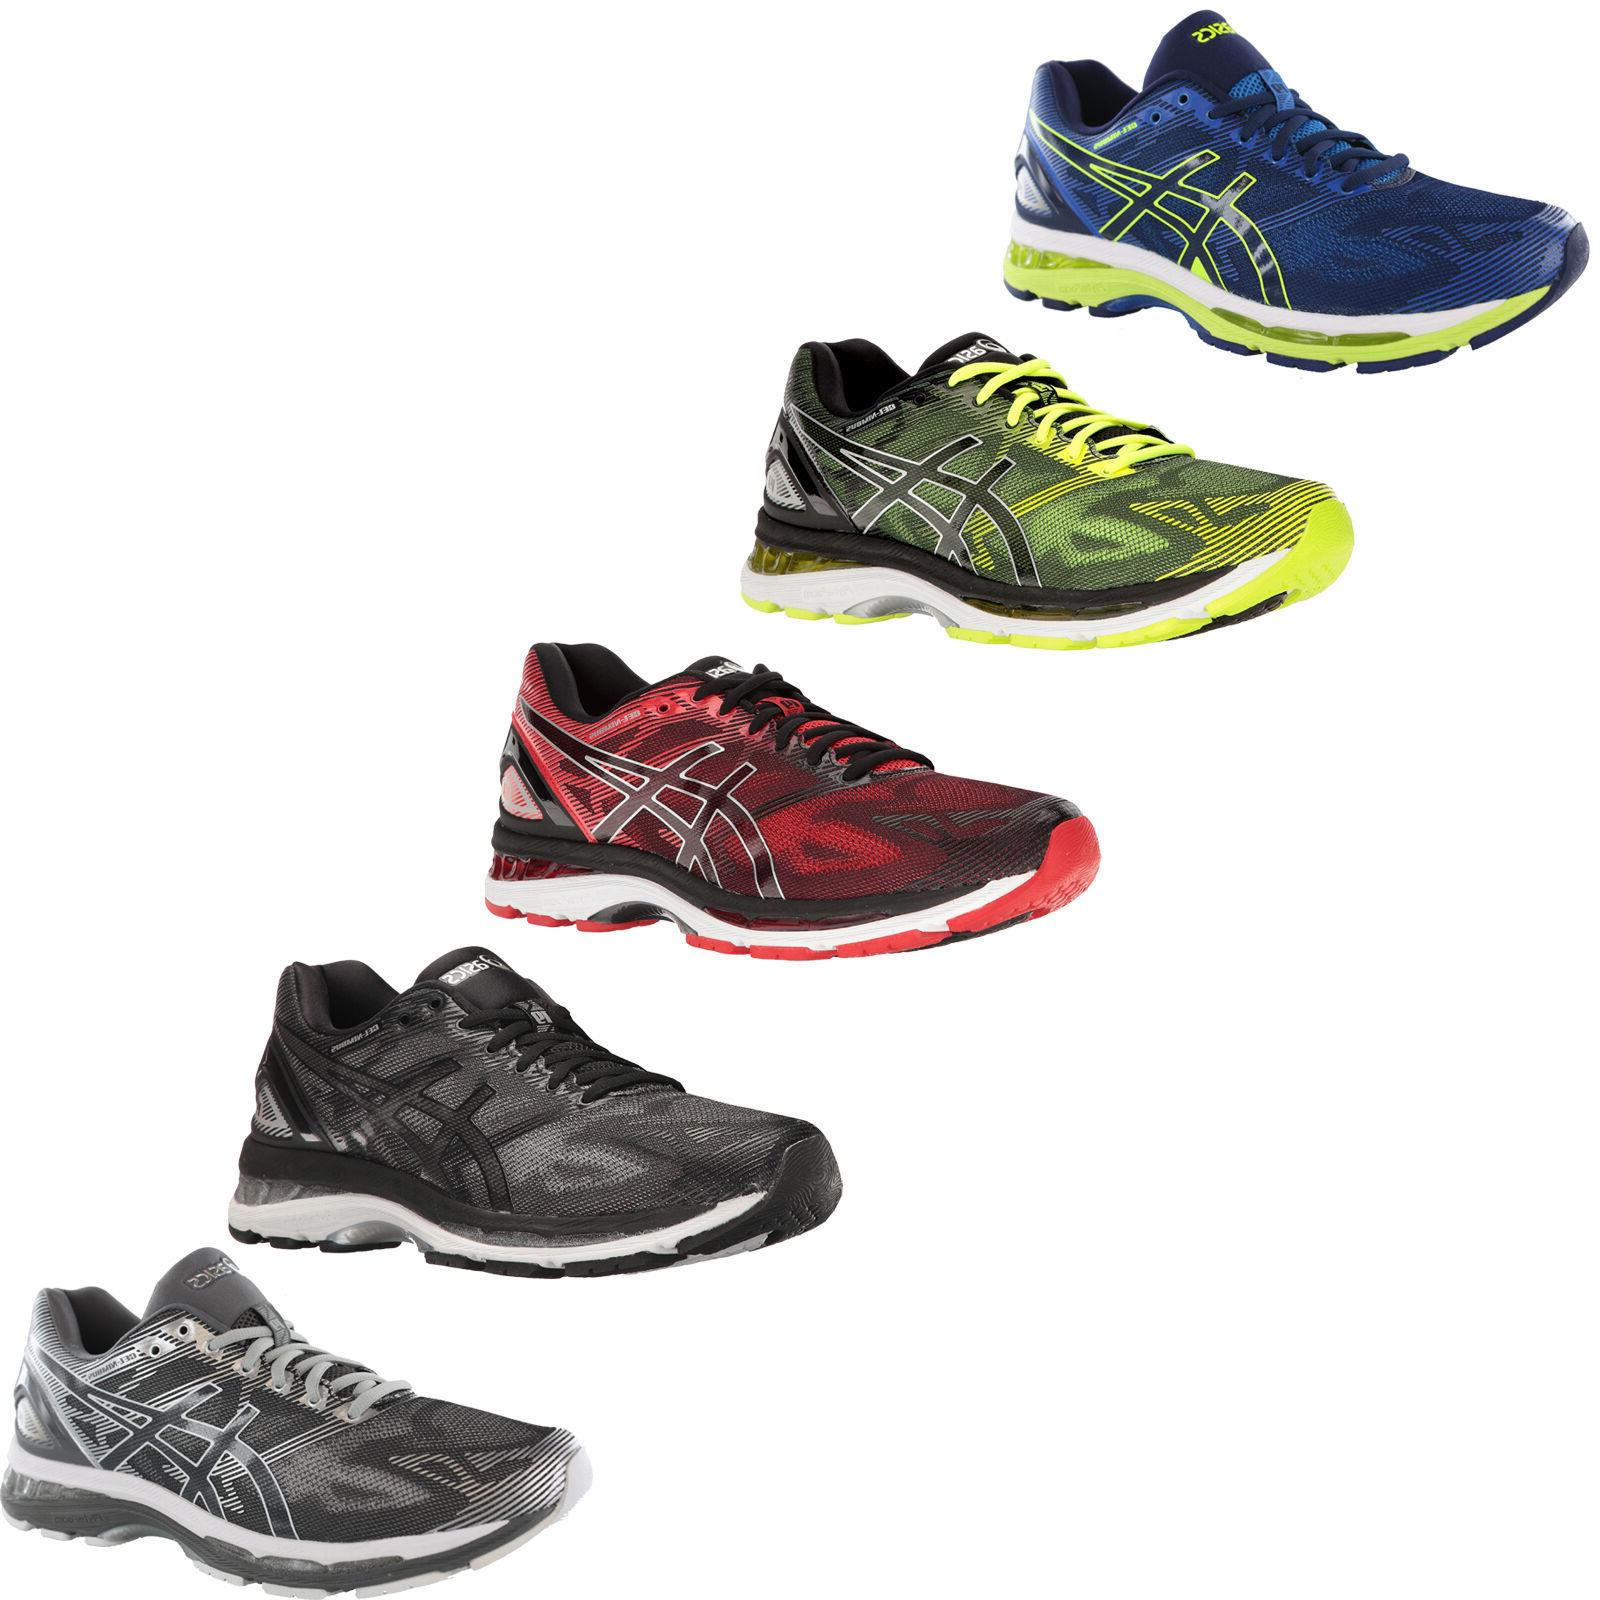 ASICS MENS GEL NIMBUS 19 T700N RUNNING SHOES